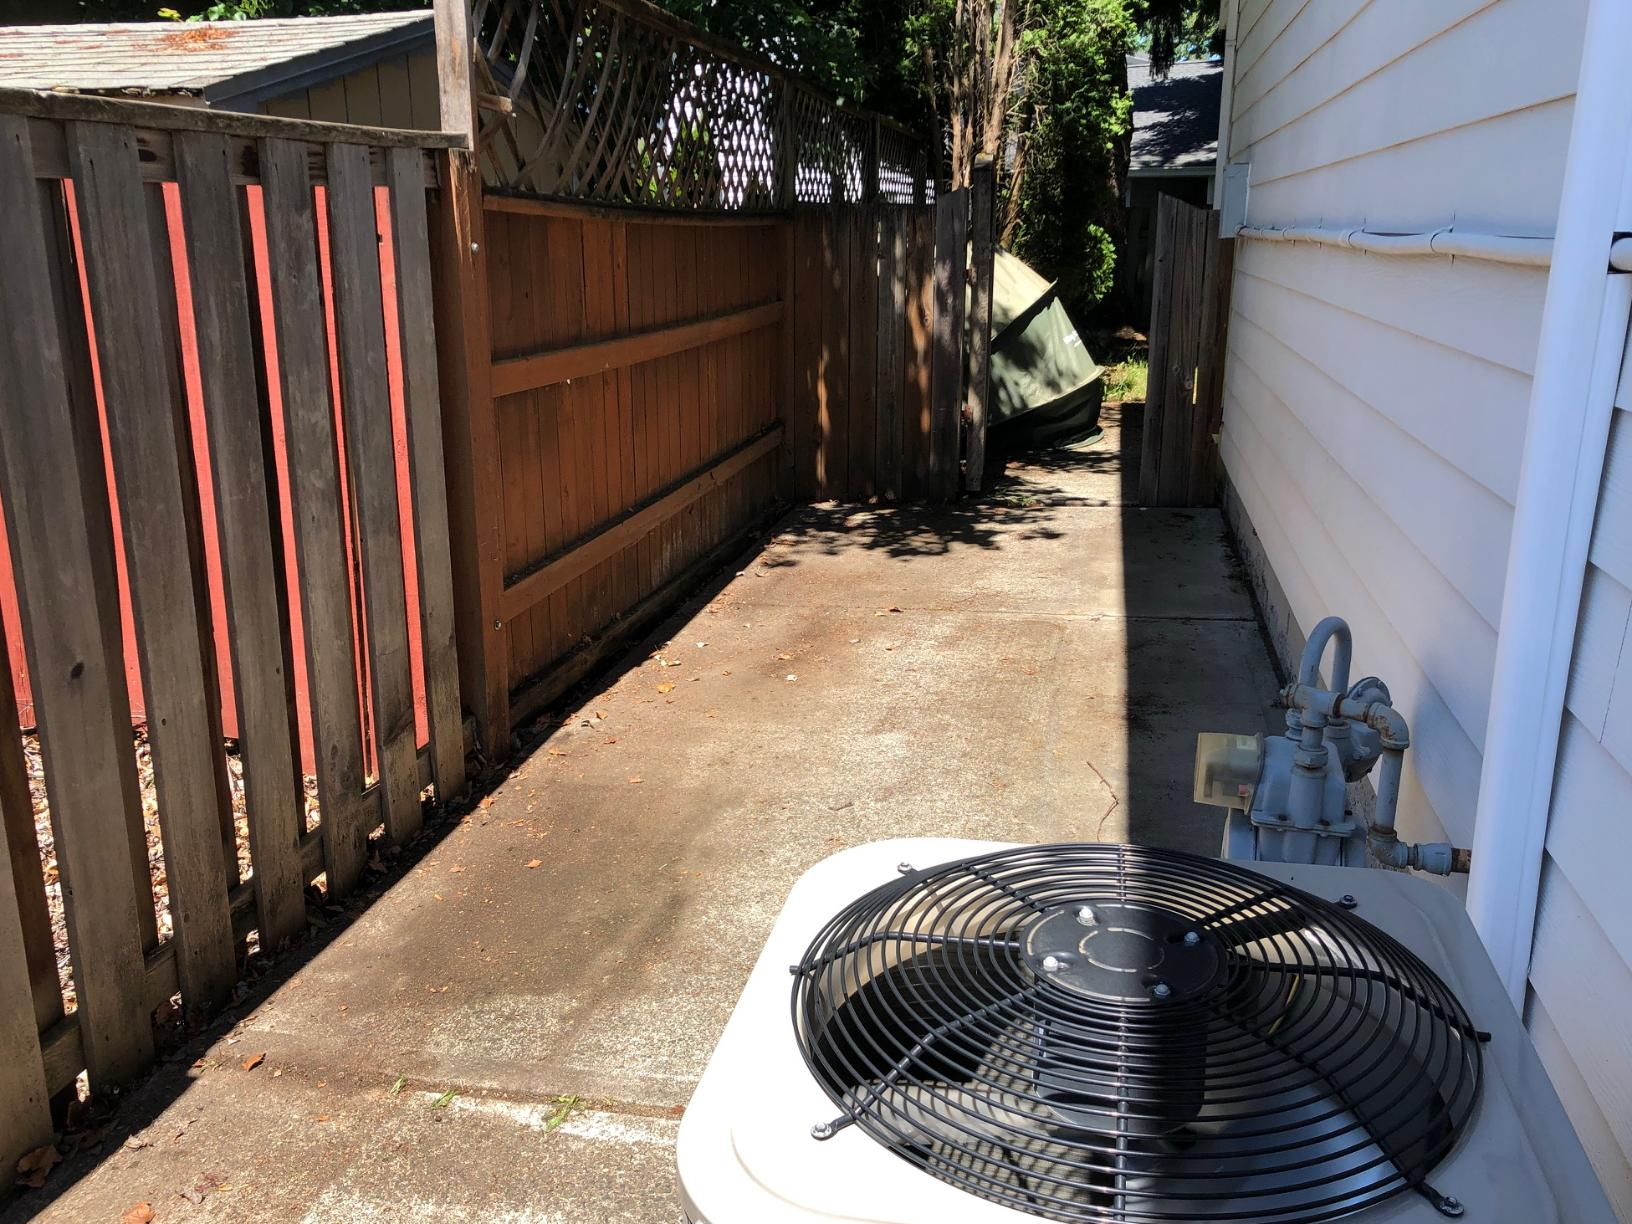 Troutdale, OR - Junk Removal - After Photo